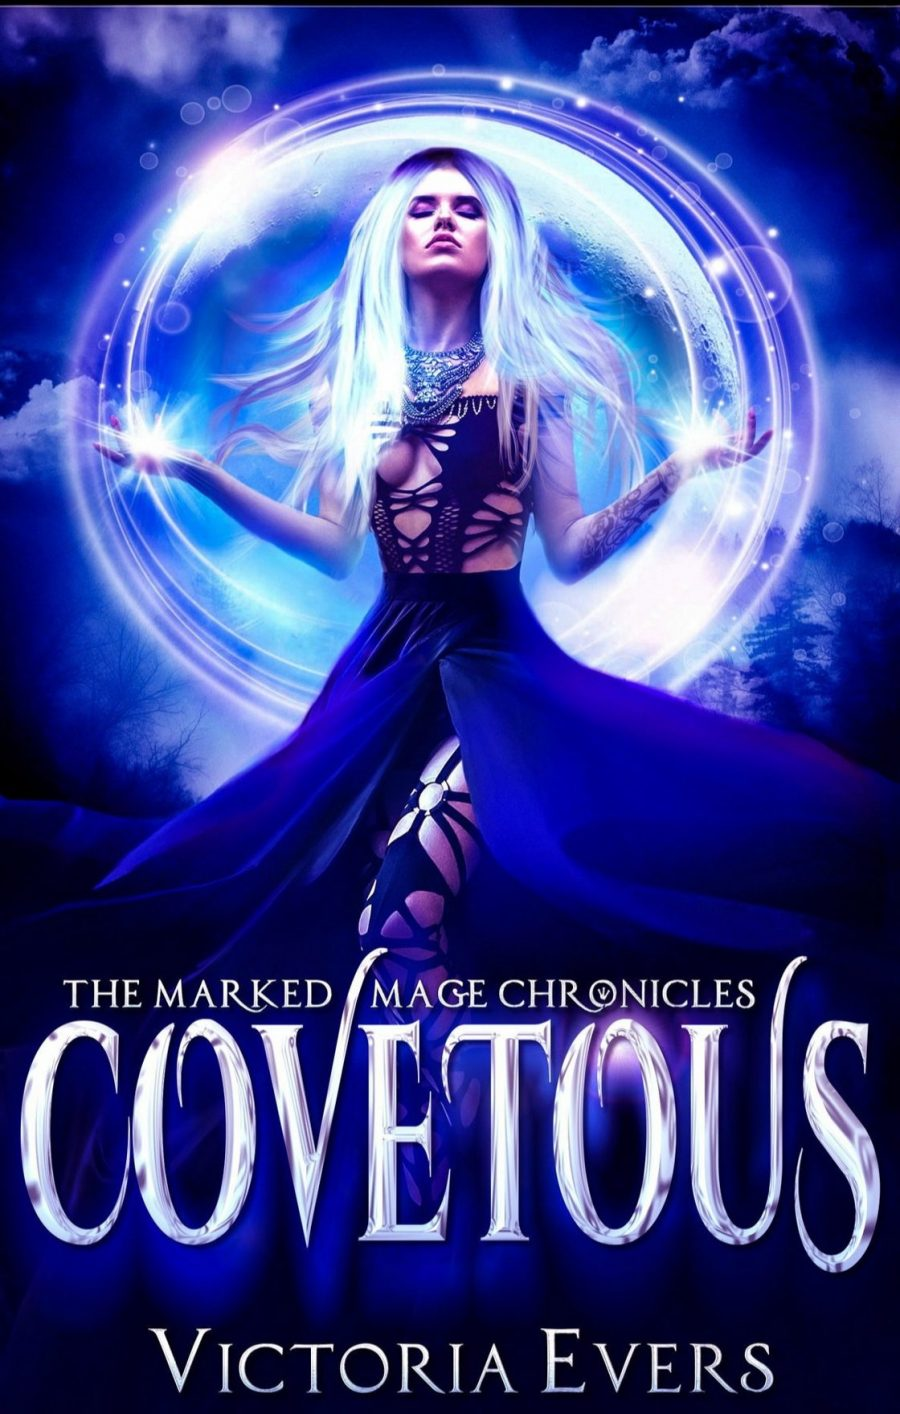 Covetous by Victoria Evers – A Book Review